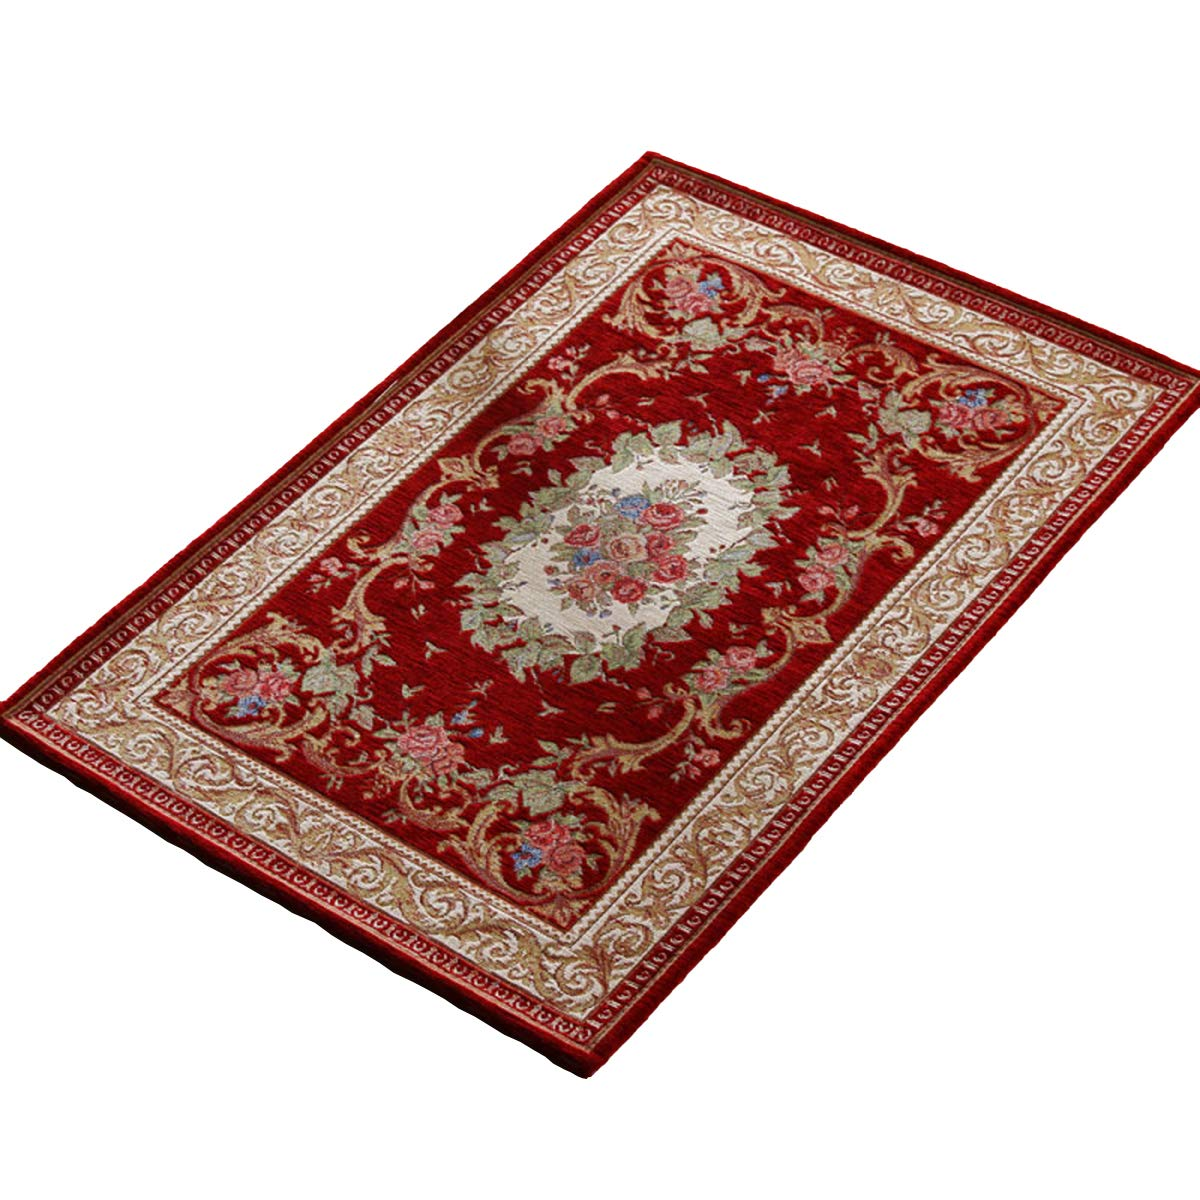 KEYAMA 32x 20Acrylic Non-Slip Carpet Stair Treads Thicken Rectangle Jacquard Parlor Floral Area Rugs Classical doormats Stair Corner Matching Landing Carpet mats 059 Brown